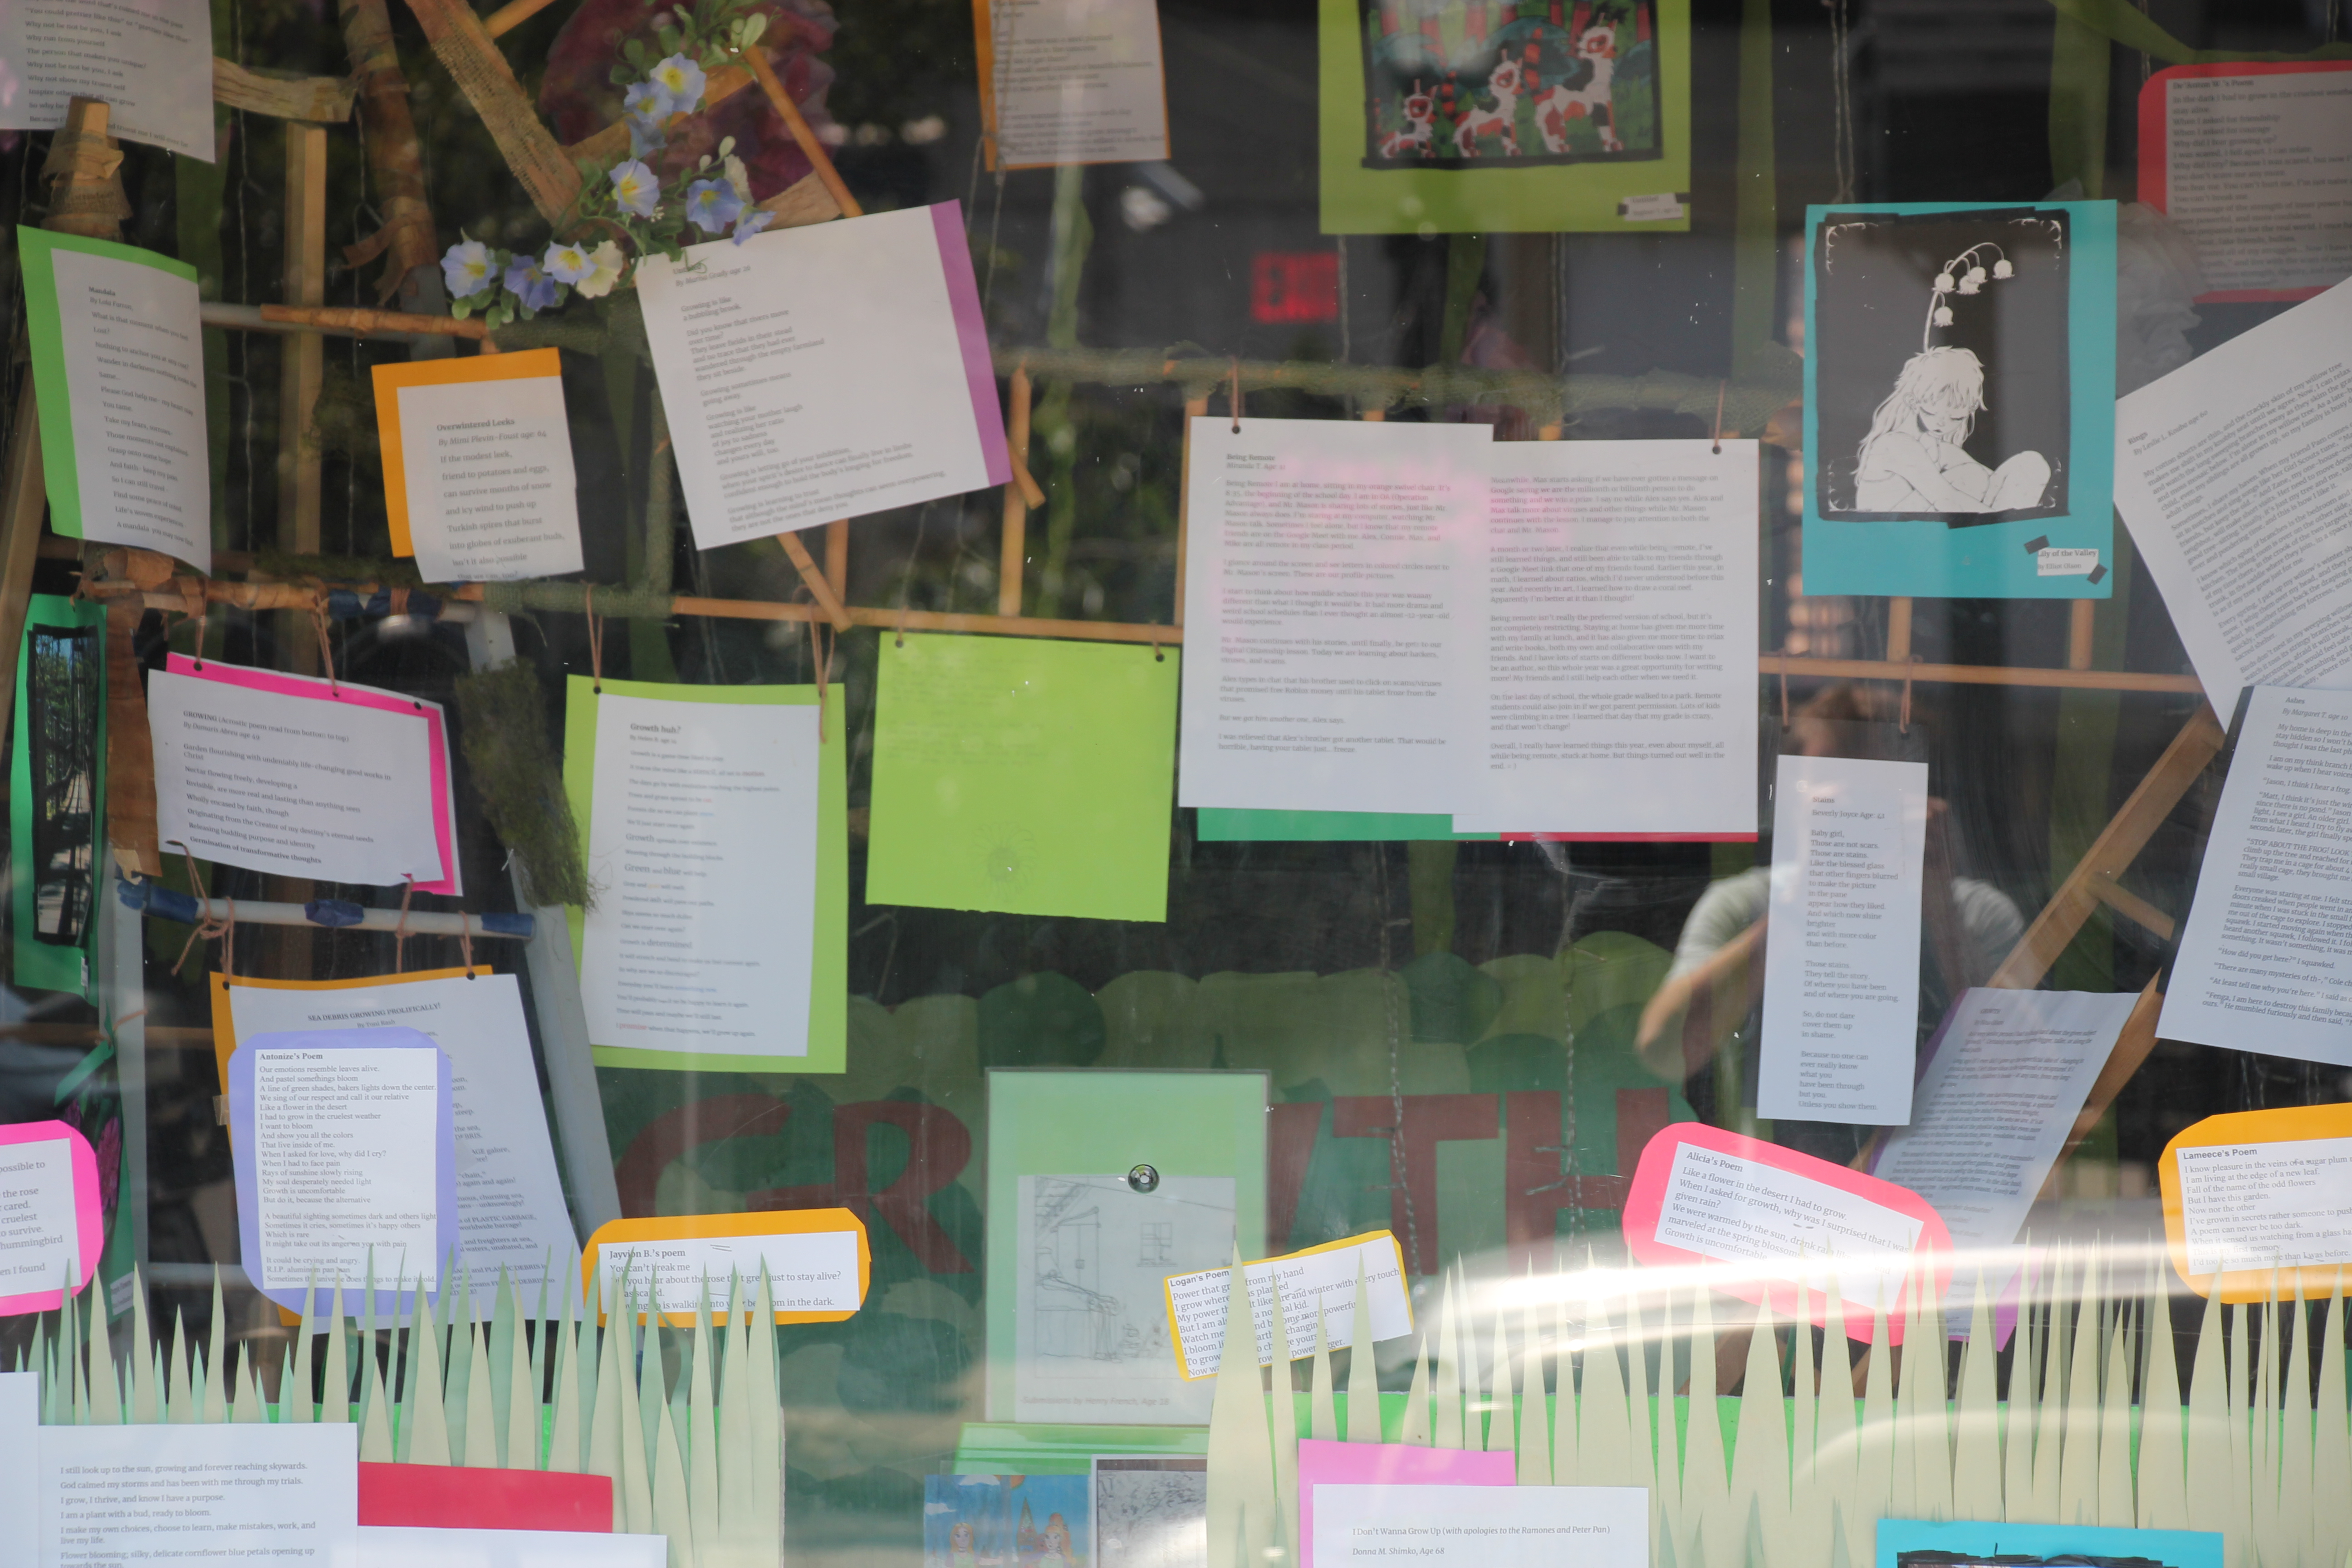 Growth Storefront Display and News Story